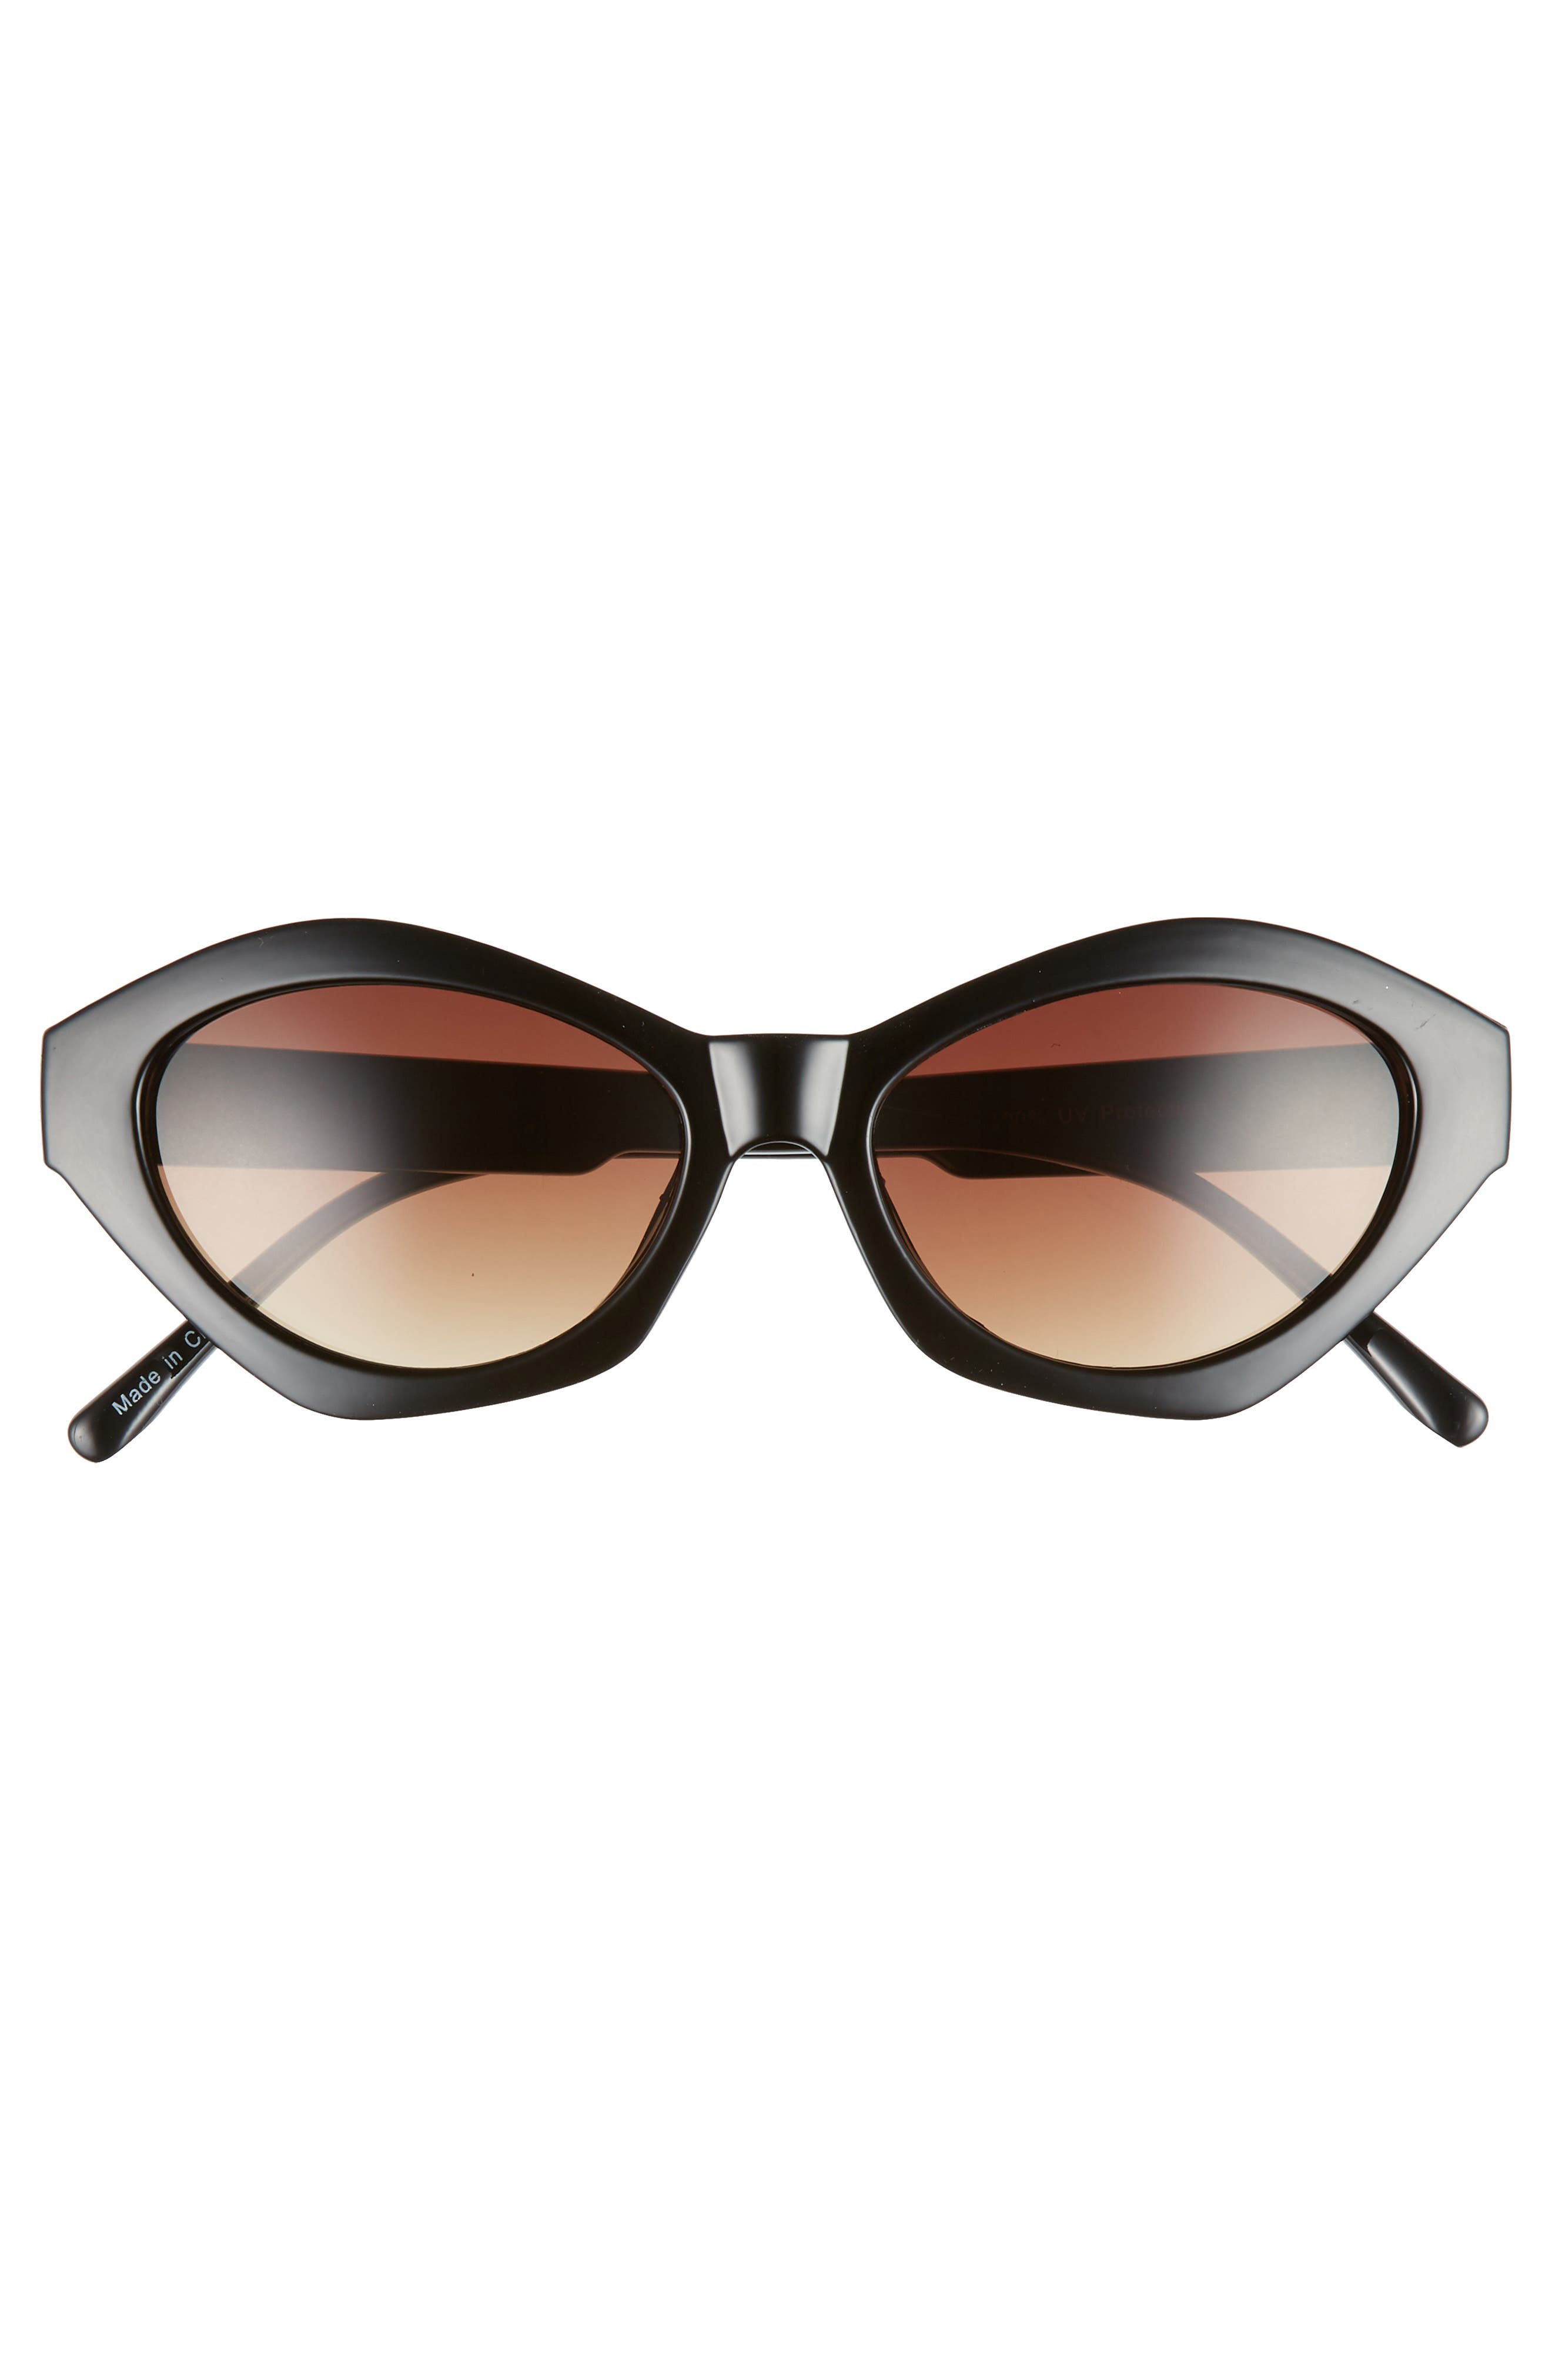 58mm Curved Cat Eye Sunglasses,                             Alternate thumbnail 3, color,                             001